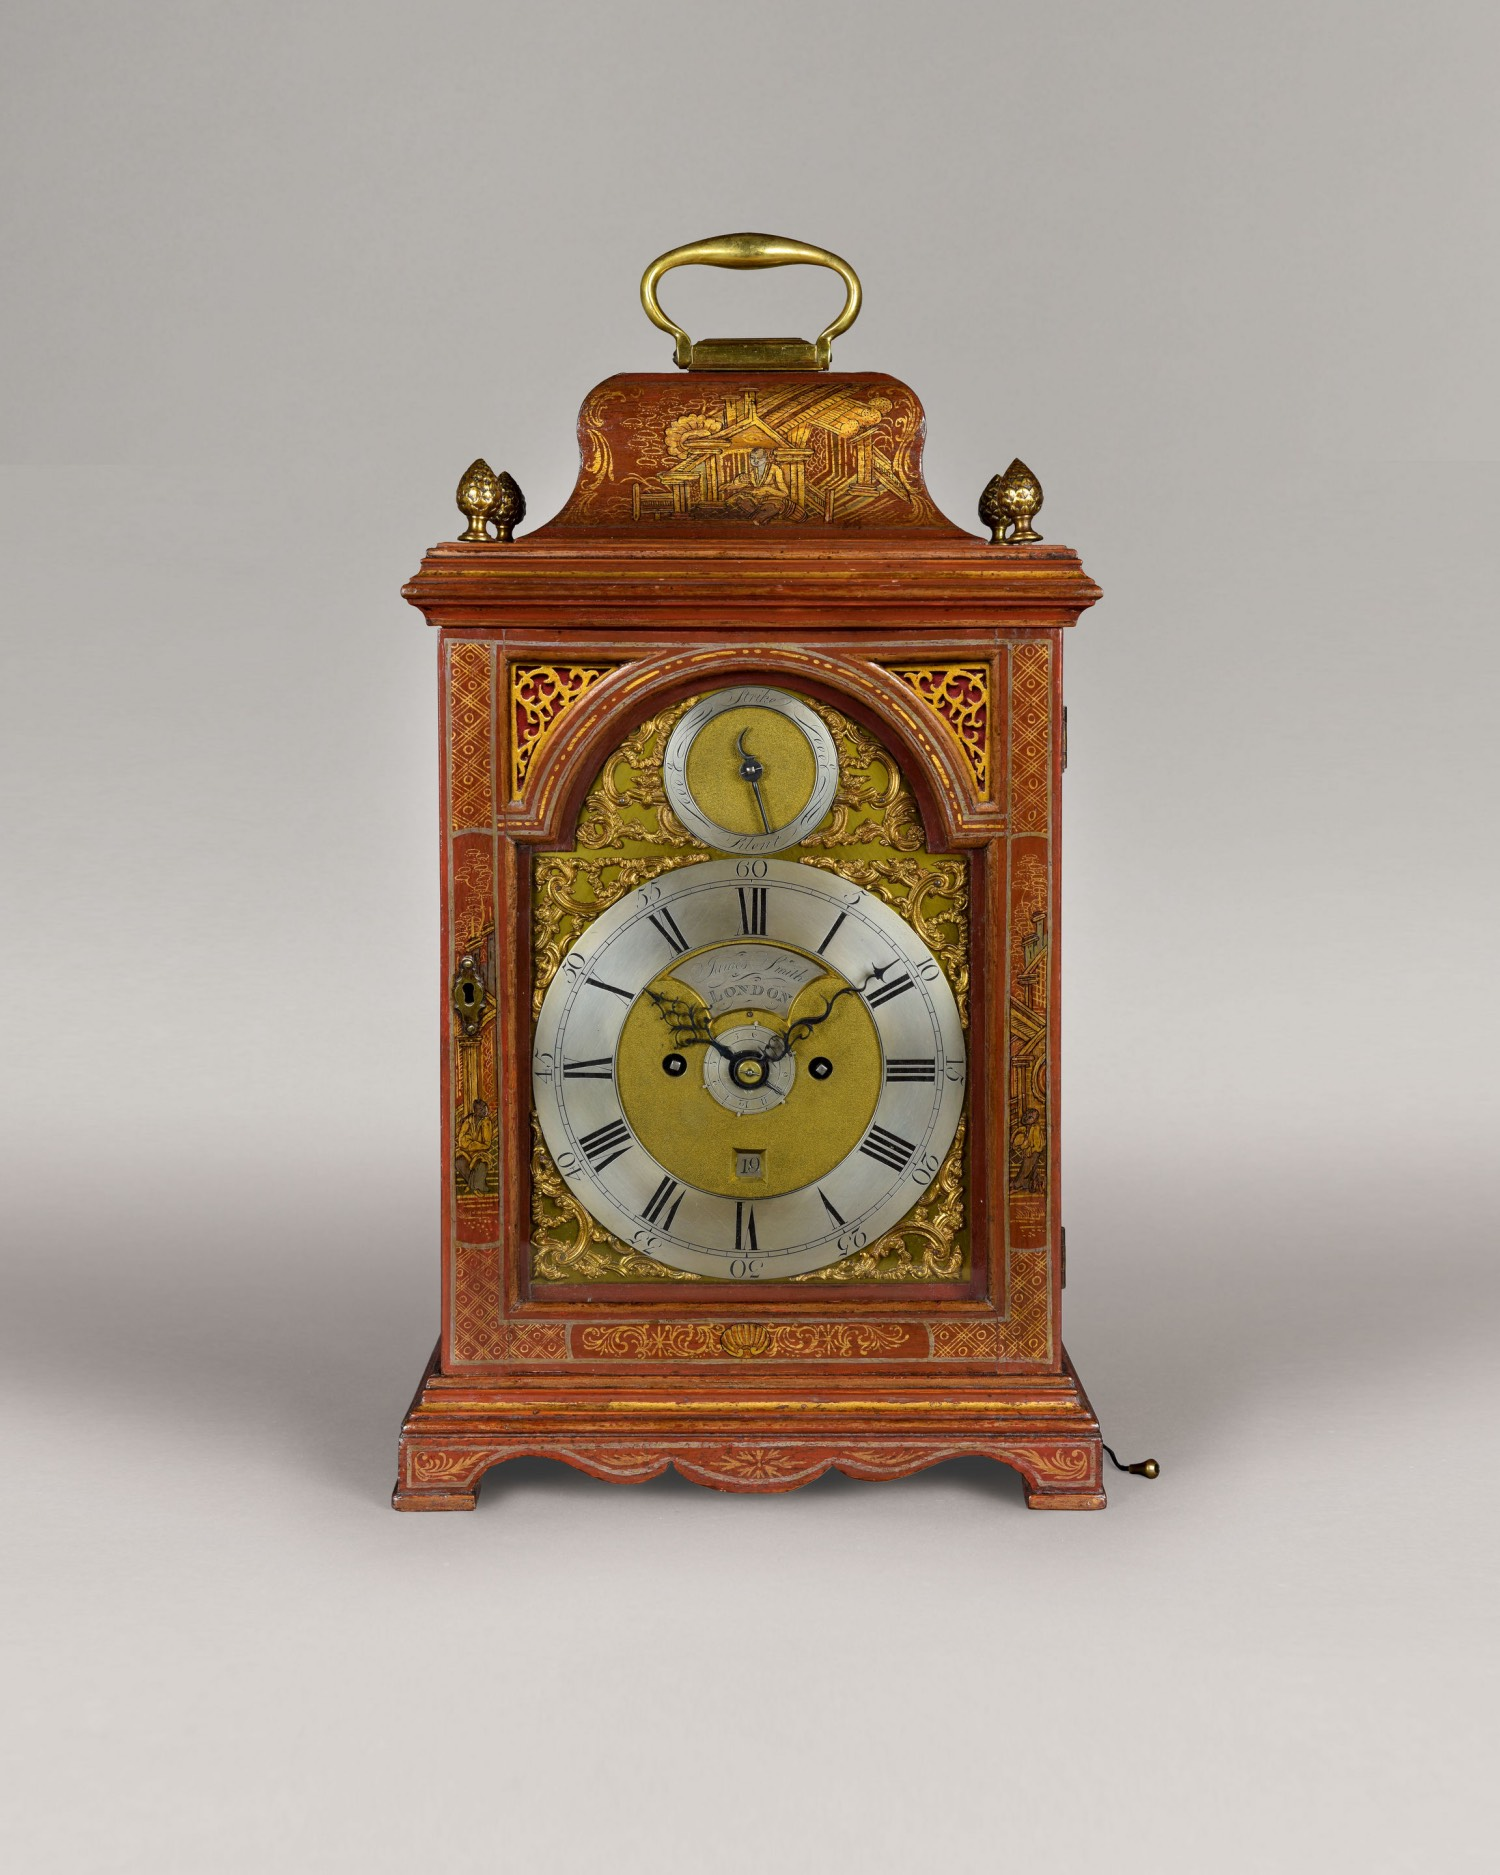 JAMES SMITH. A FINE GEORGE III PERIOD RED LACQUER ALARM TABLE CLOCK.